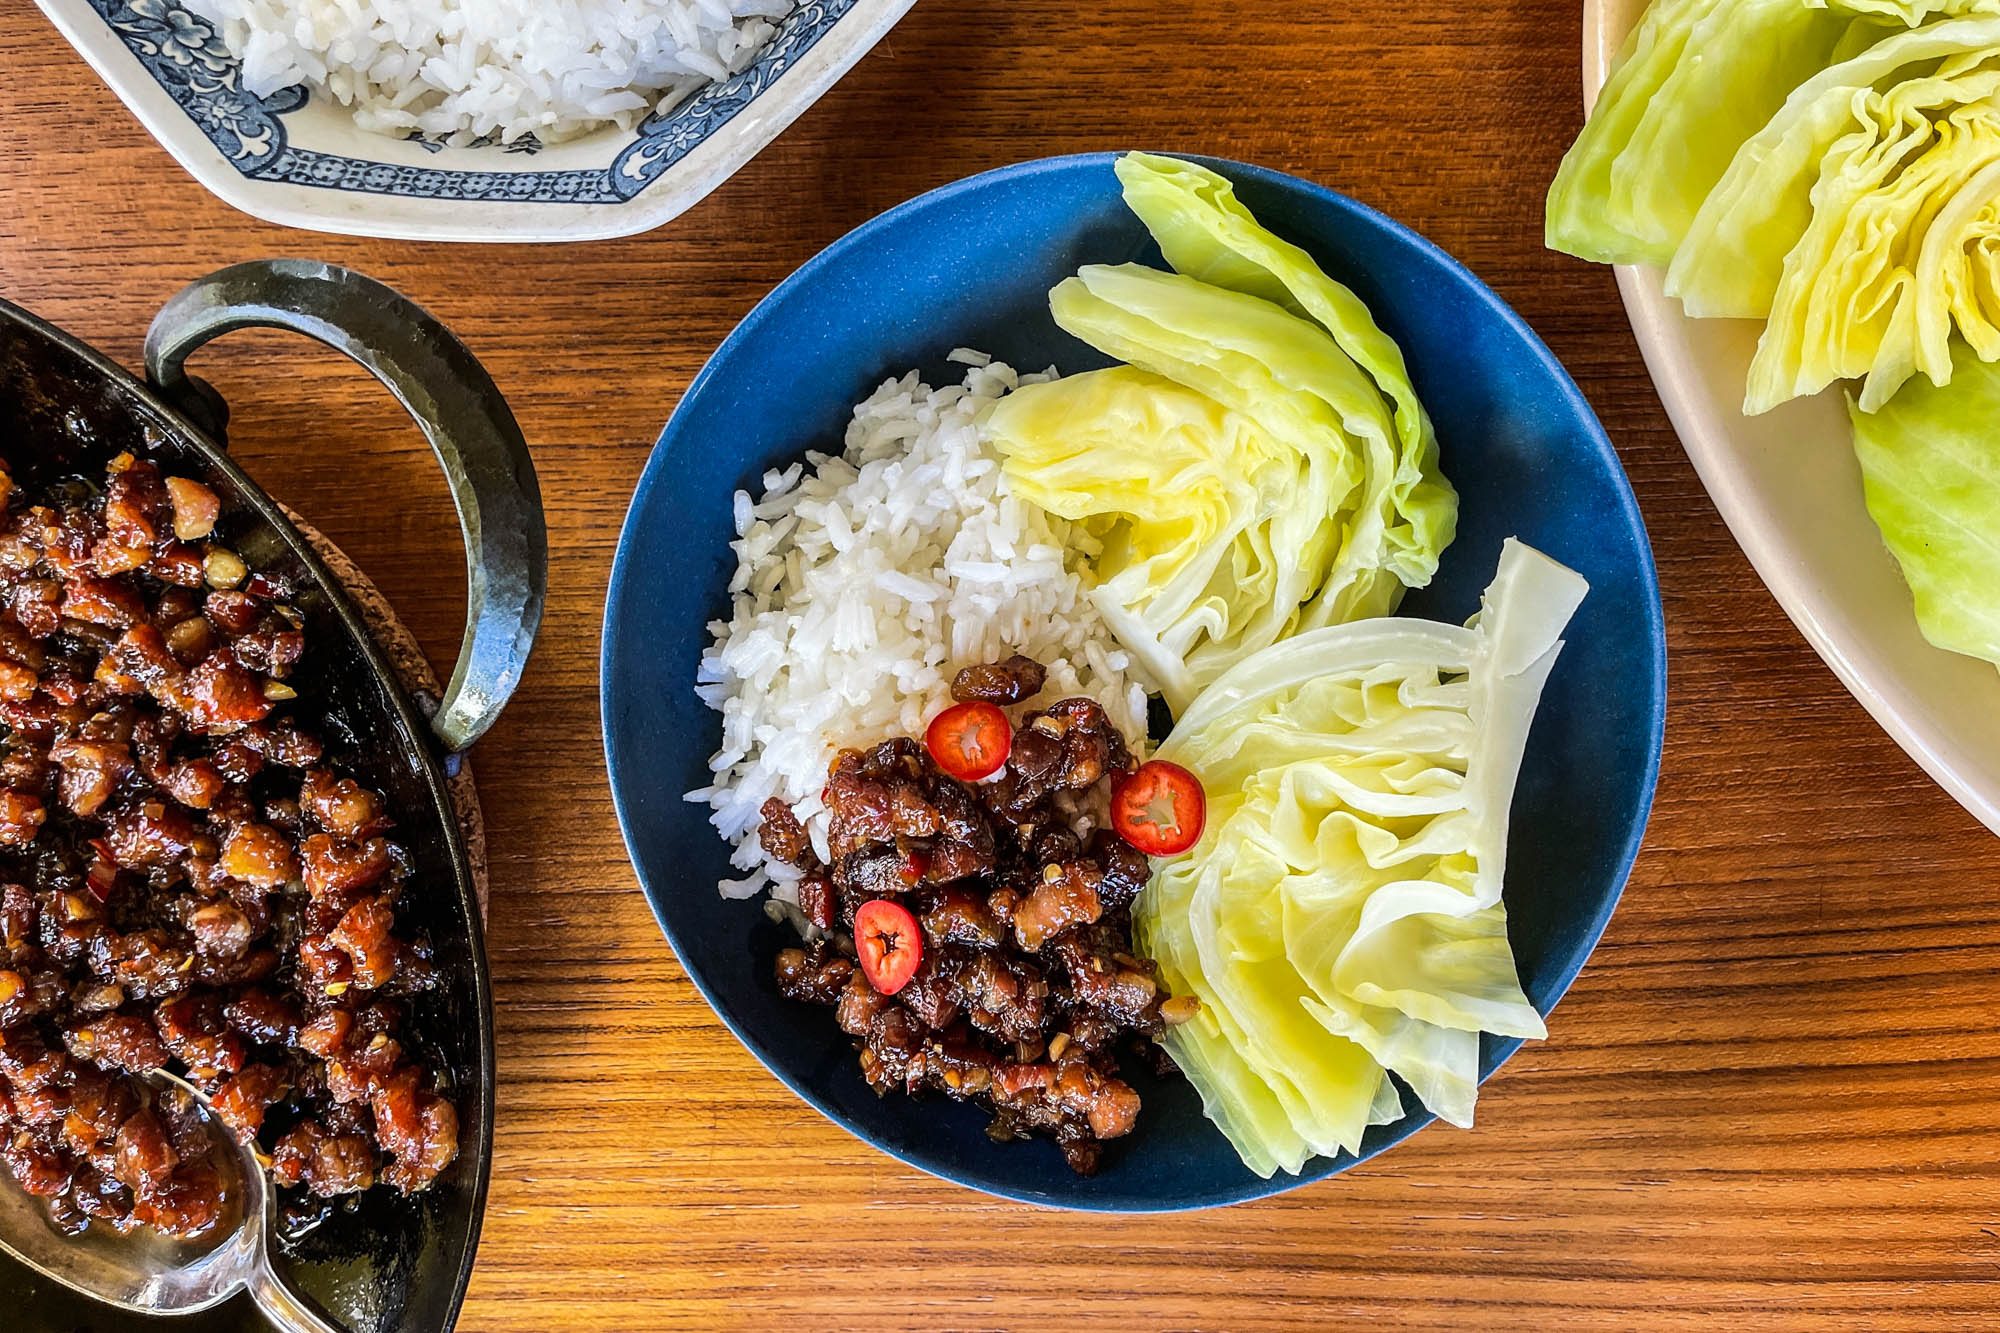 Kho (Braised Vietnamese Minced Pork) with Cabbage